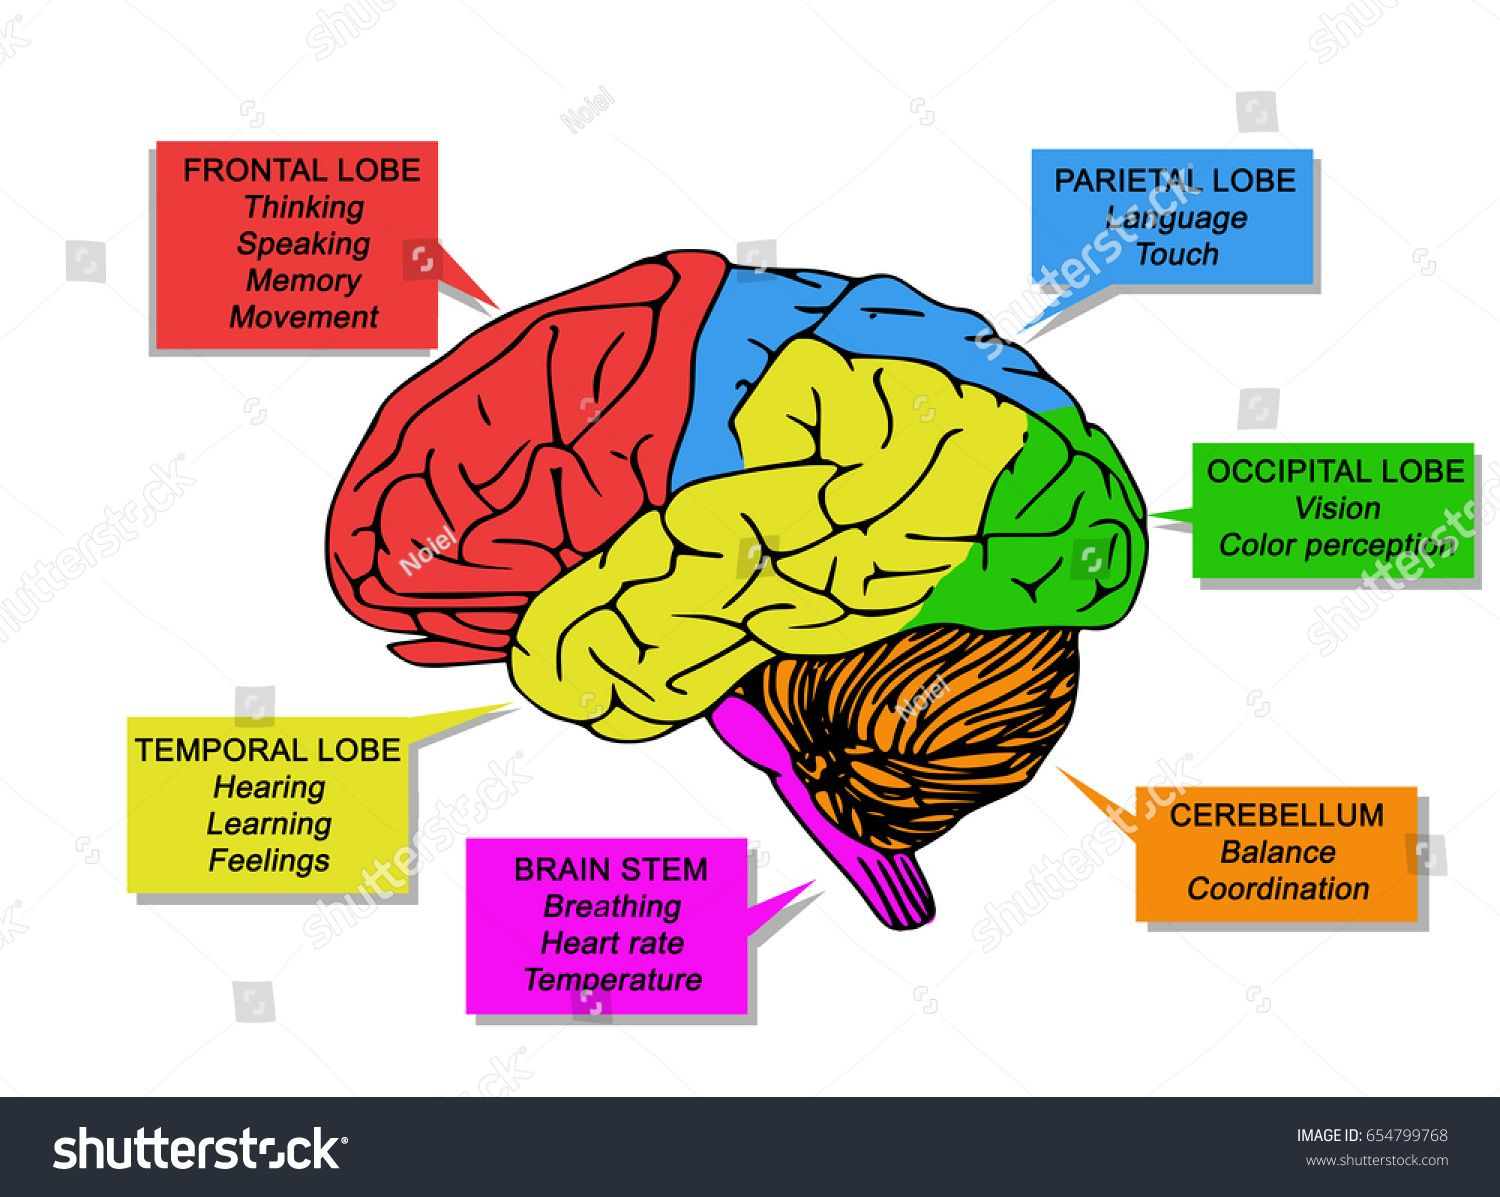 The Human Brain Diagram And Functions Koibana Info Human Brain Parts Brain Parts Brain Parts And Functions